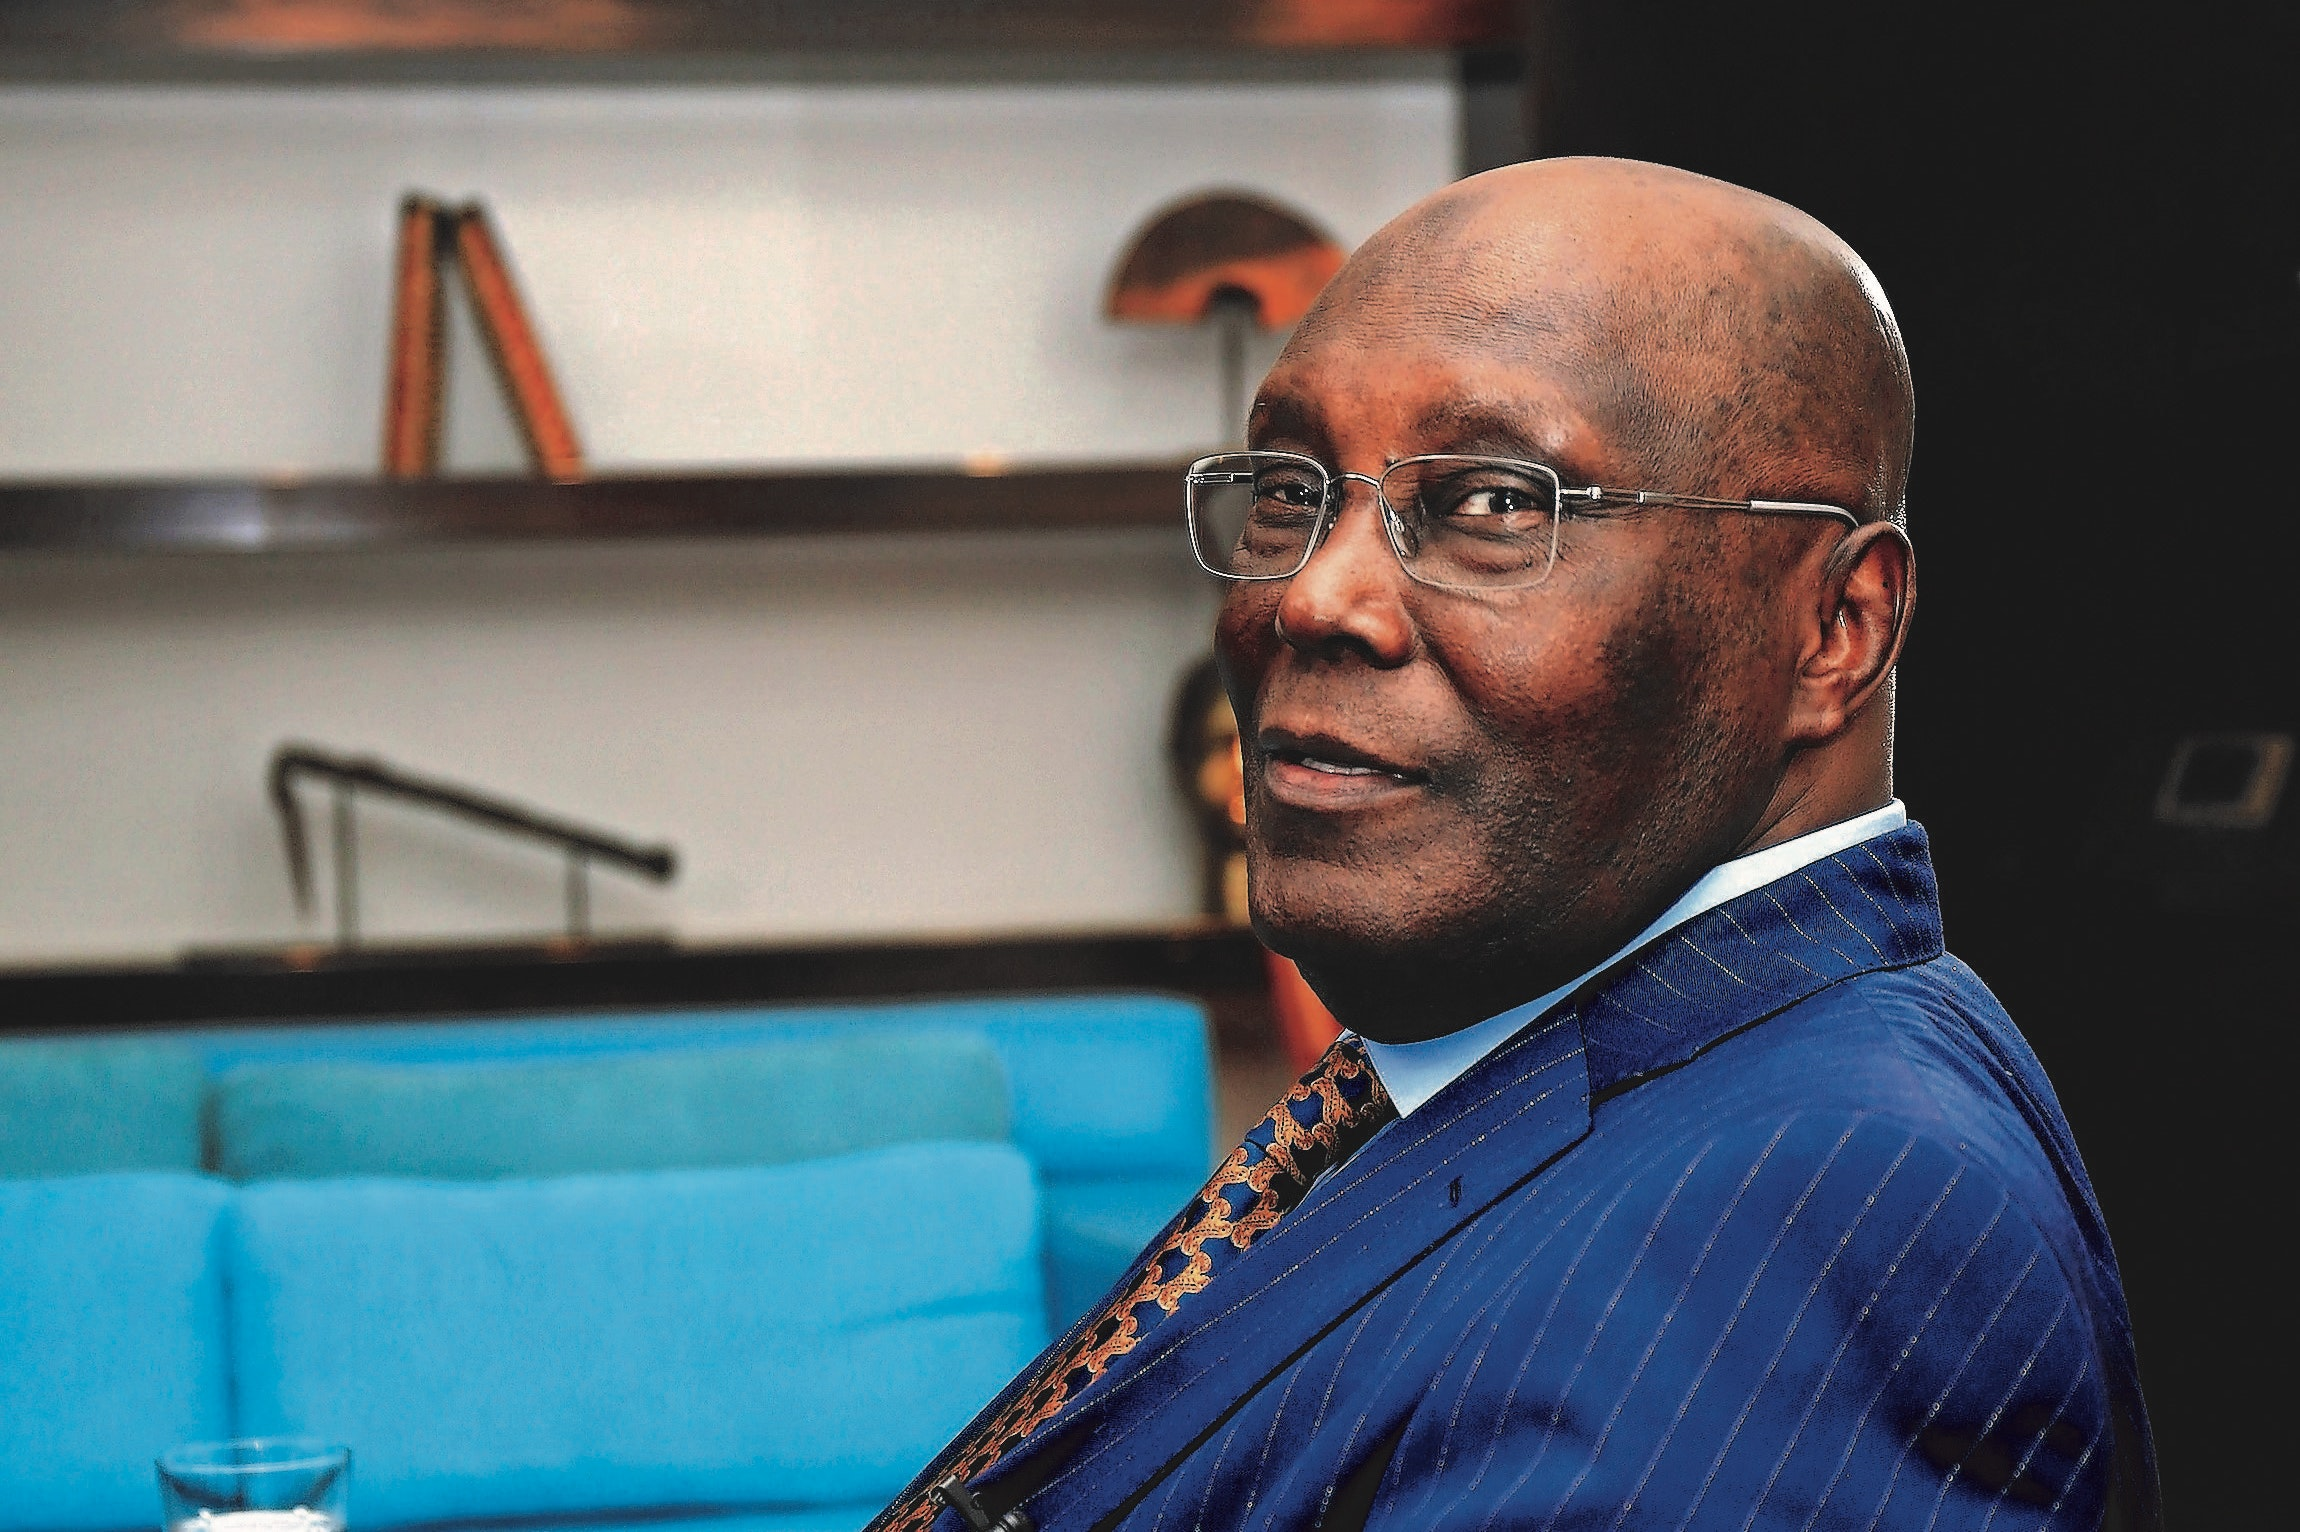 """Atiku Abubakar, Nigeria's main opposition presidential candidate, poses for a photograph ahead of a Bloomberg Television interview in Lagos, Nigeria, on Wednesday, Jan. 16, 2018. Abubakar said he'll sell the state oil company, which he called a """"mafia organization,"""" and attract private investors to drive growth and create jobs if he wins office next month. Photographer: George Osodi/Bloomberg"""